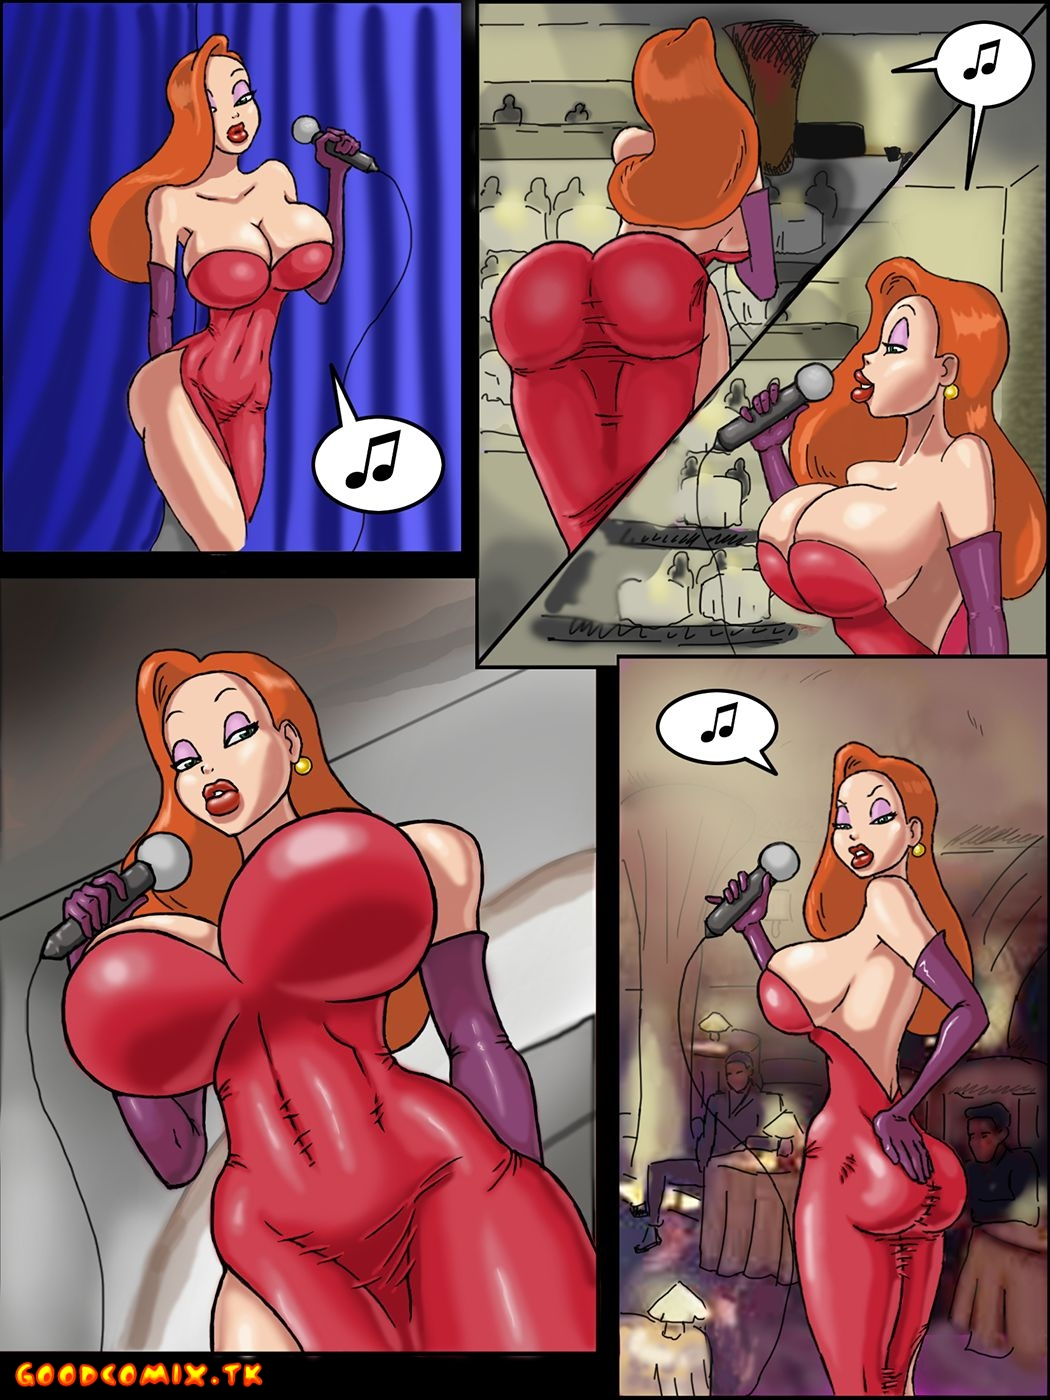 Goodcomix.tk Who Censored Roger Rabbit - [Thetrigger123412] - Beauty and the Bouncer